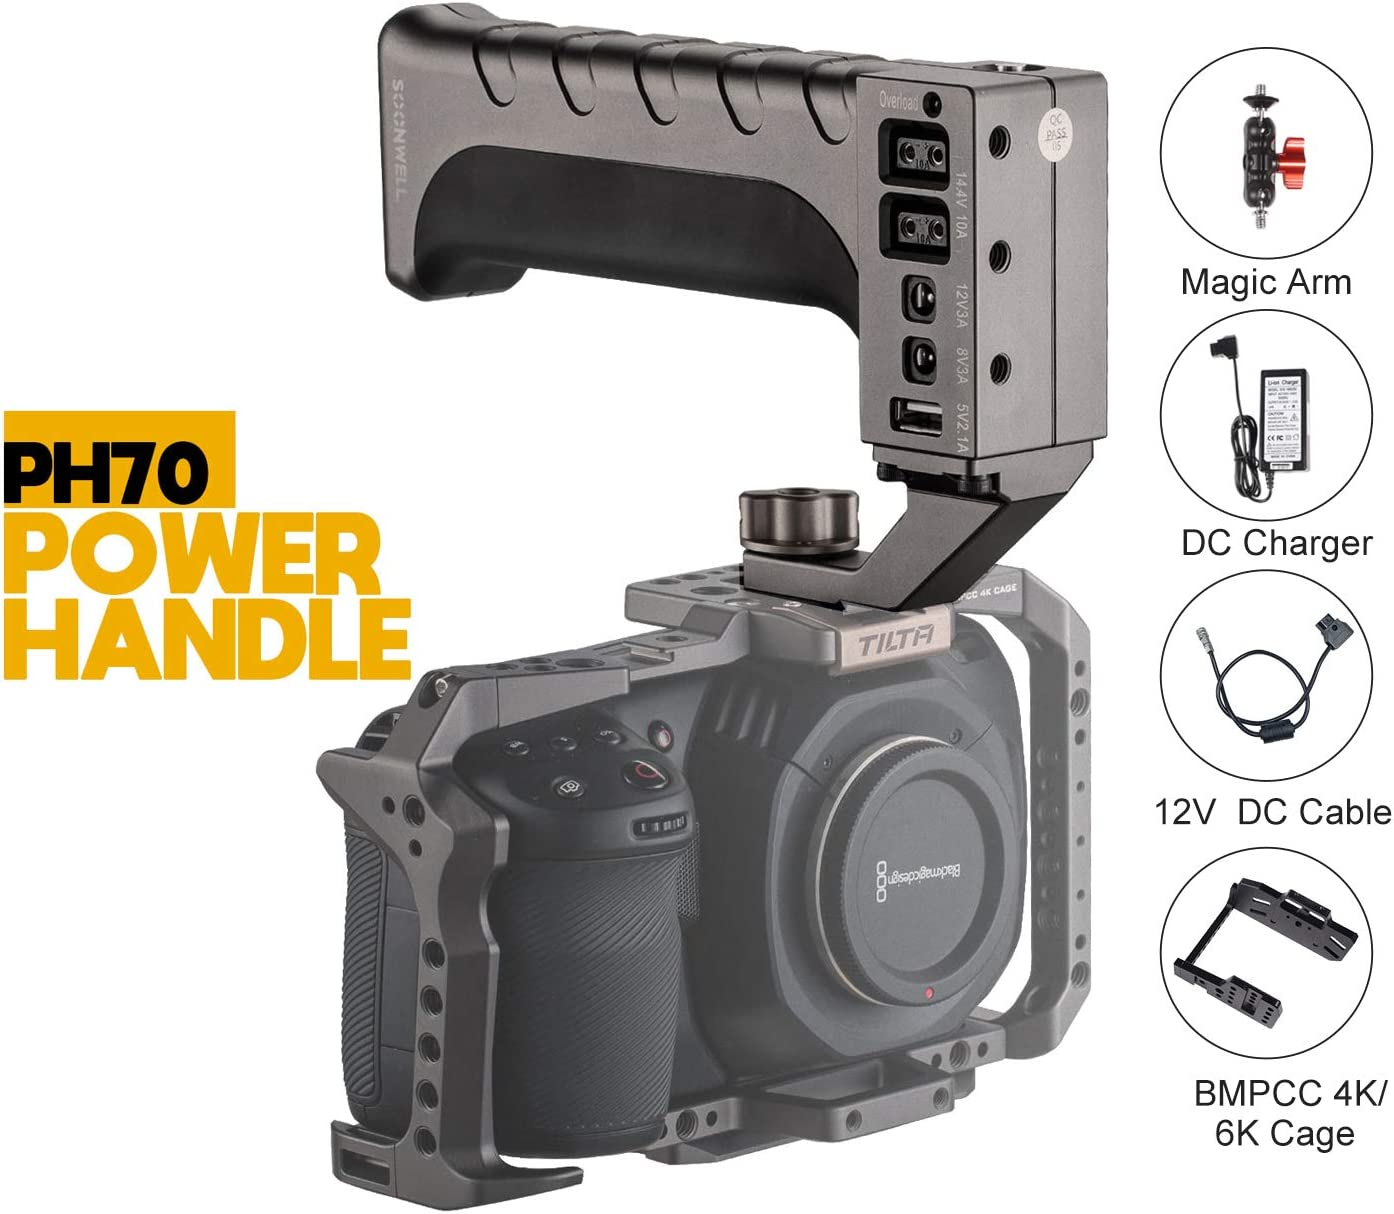 Amazon Com Soonwell Ph70 70wh Battery Handle Bundle Kit With Camera Cage D Tap Power Cable D Tap Charger Mini Magic Arm Compatible With Blackmagic Pocket Cinema Camera 4k 6k Camera Photo